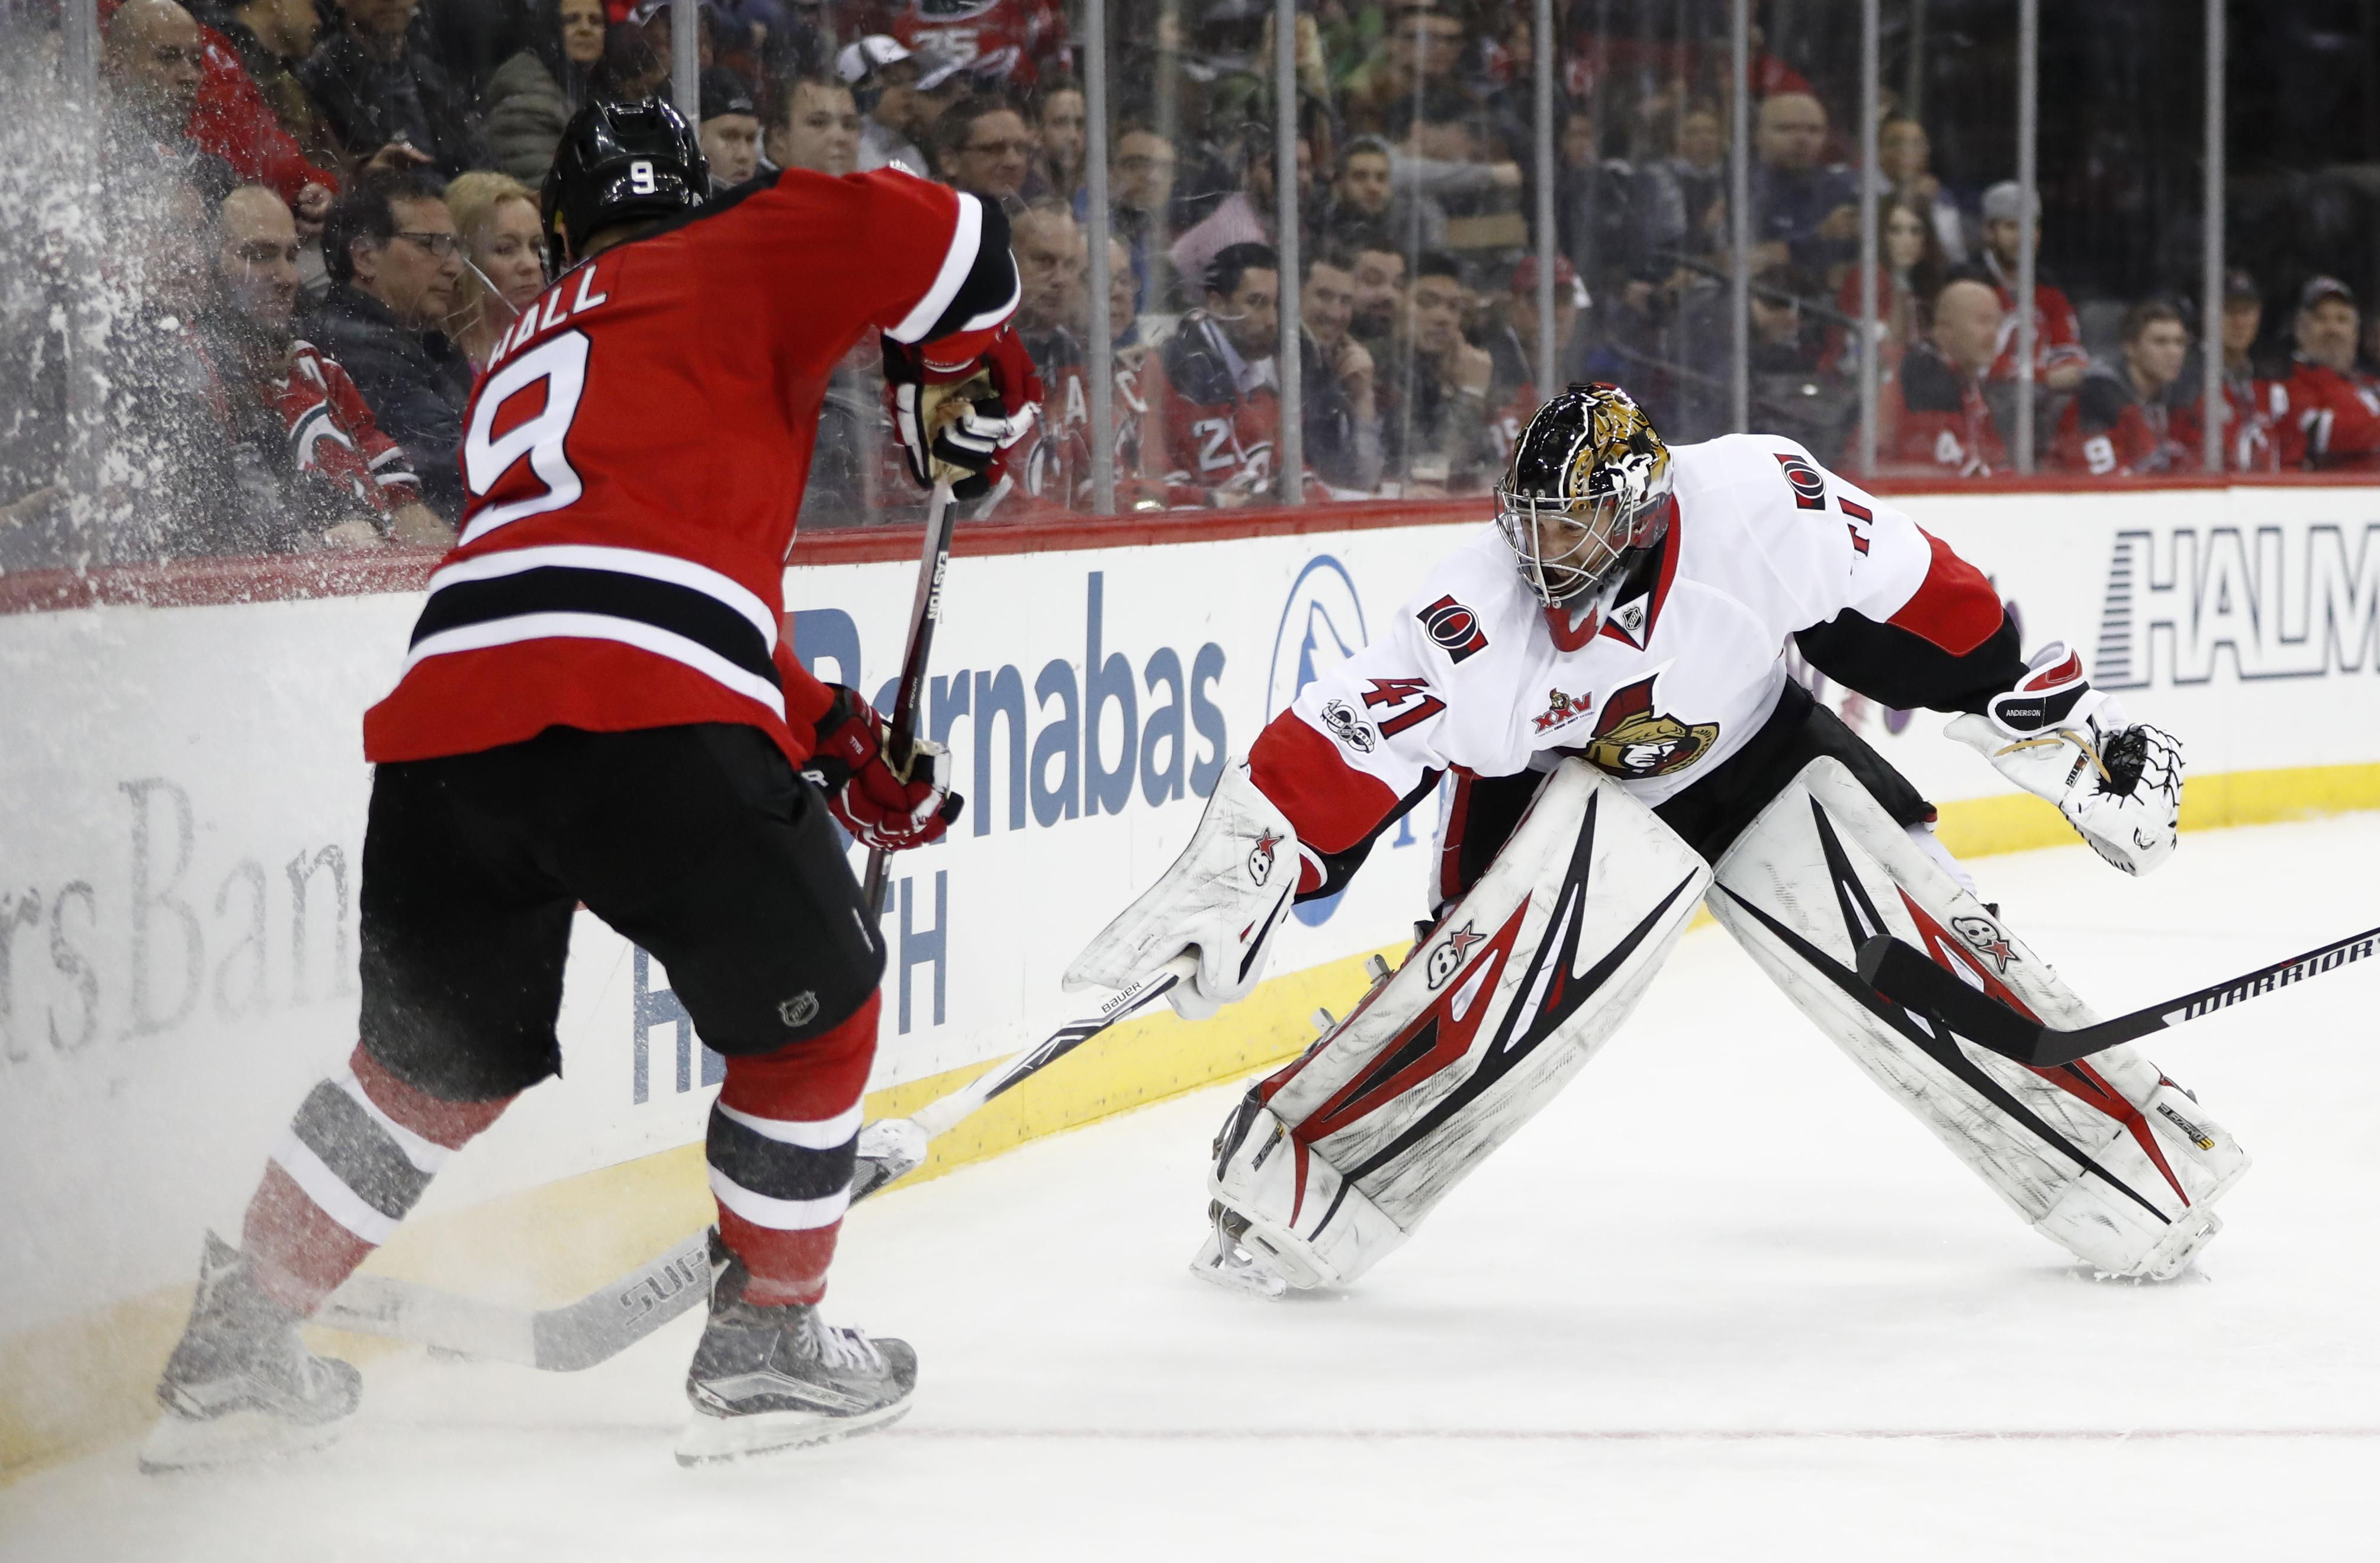 Senators_devils_hockey_95208